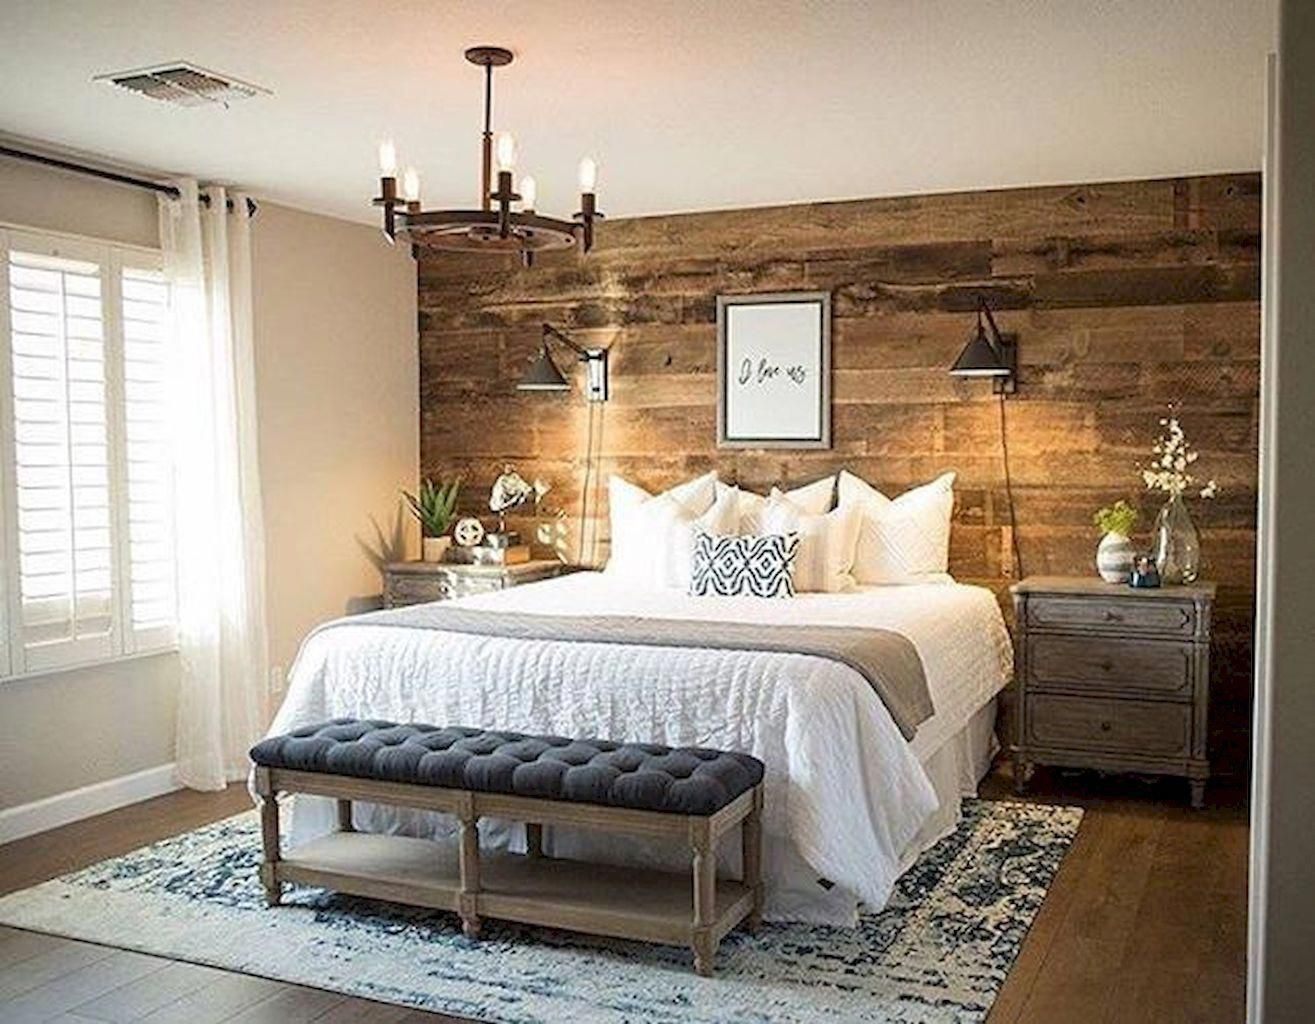 Awesome 88 Incredible Farmhouse Master Bedroom Remodeling Ideas